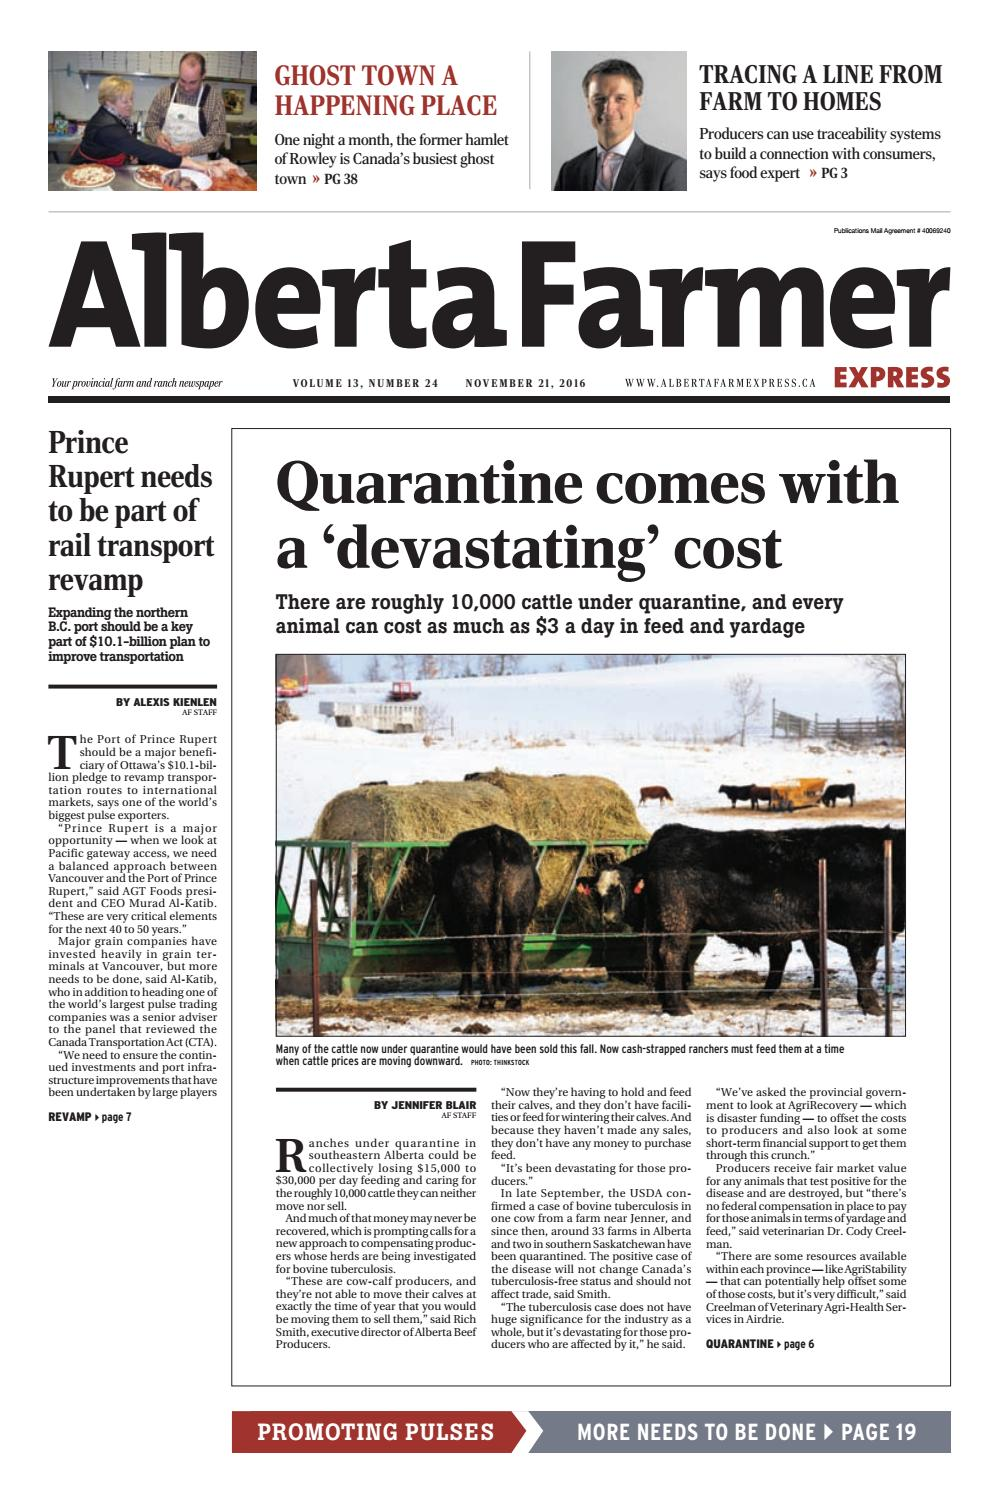 Alberta Farmer Express By Farm Business Communications Issuu The Fourwire Electric Fence System Allows Landowners To Control Deer